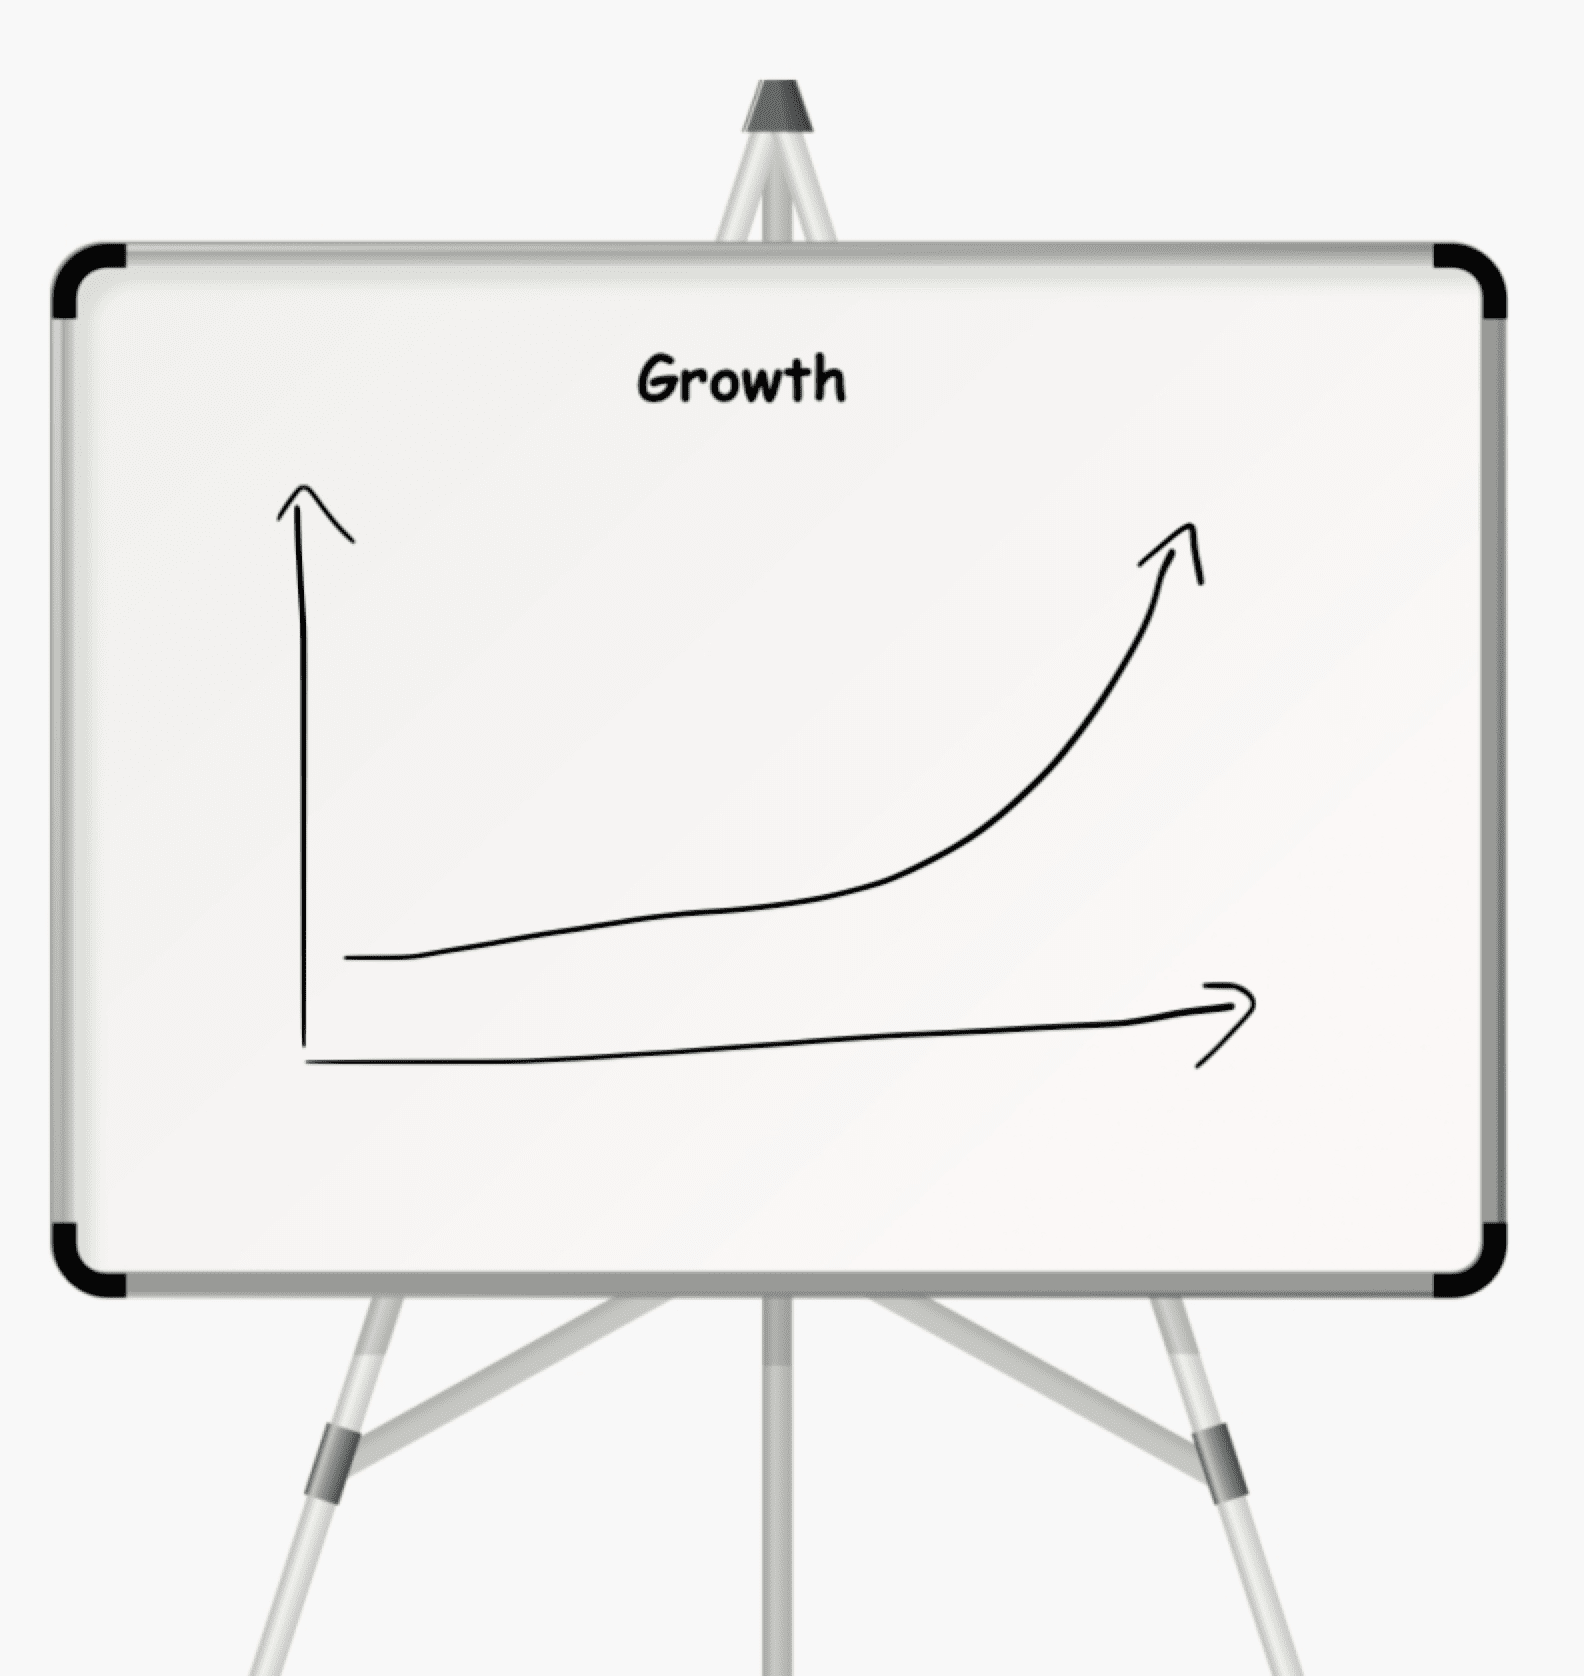 Hockey stick growth chart I was told to make growth look like in a Bain project